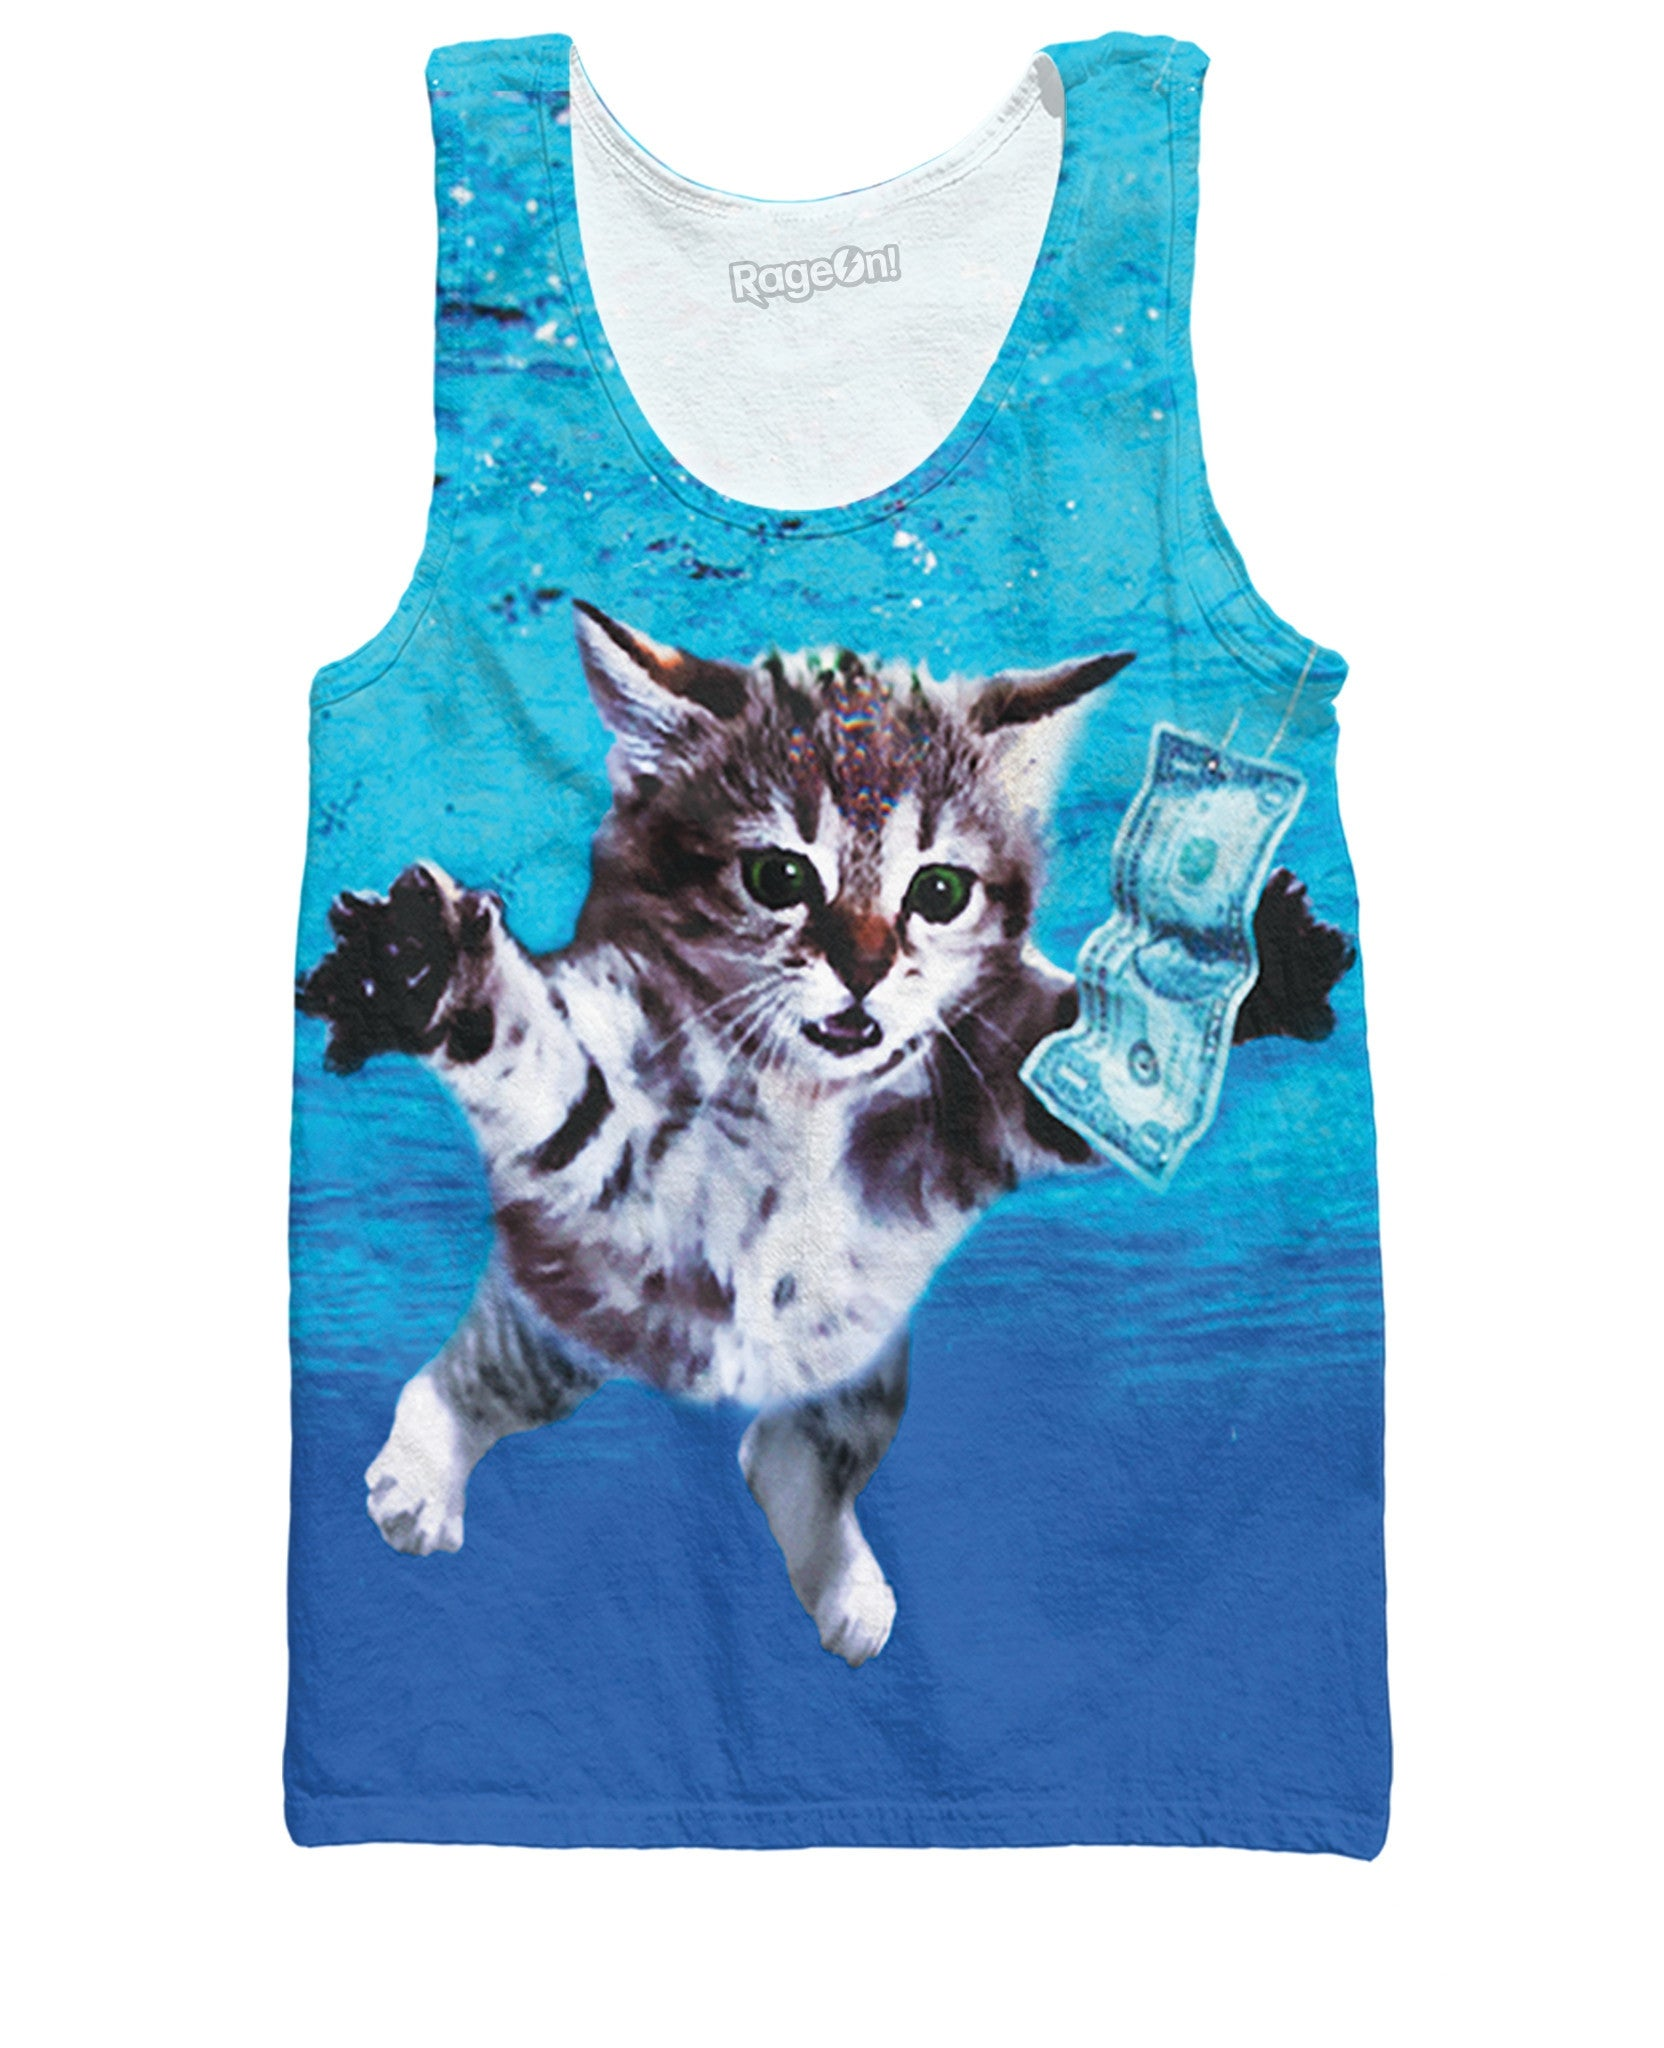 Cat Cobain Tank Top - TShirtsRUS.co